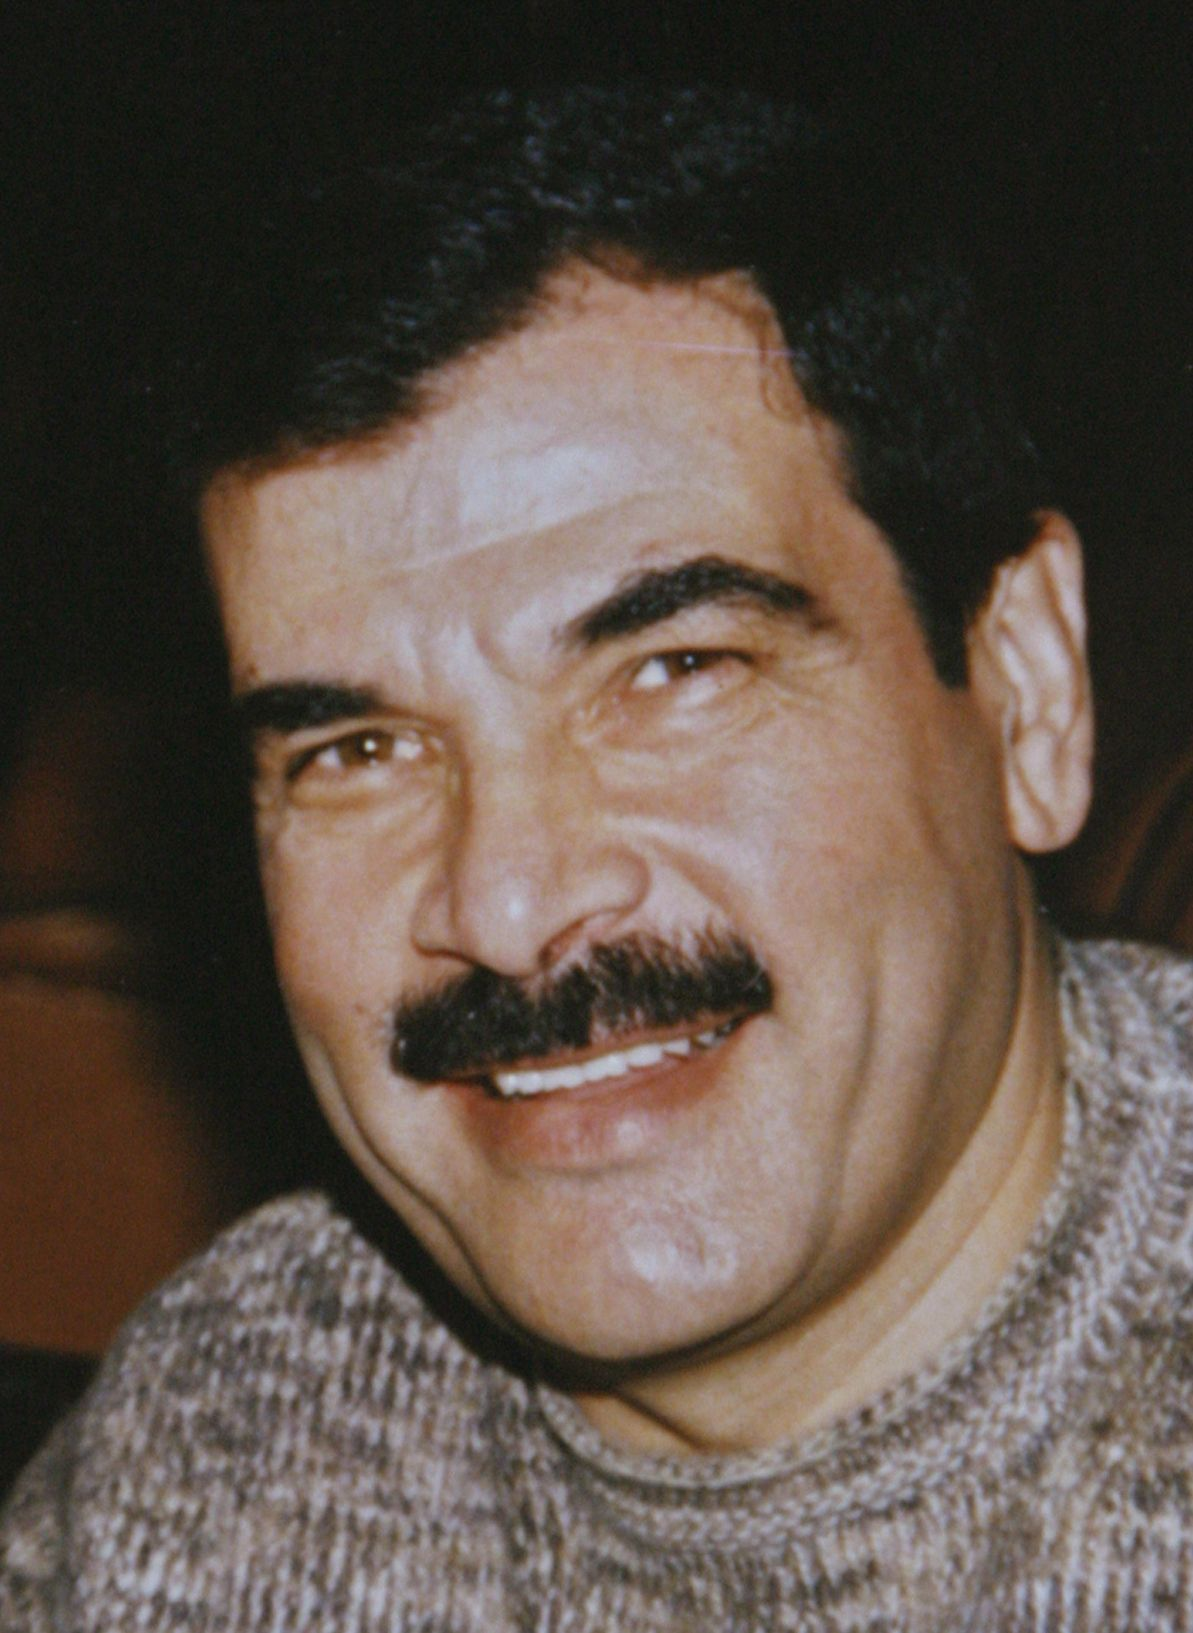 Assef Shawkat, the brother-in-law of Syrian President Bashar al-Assad, is seen in this undated handout picture. A suicide bomber killed three of Syrian President Bashar al-Assad's top military officials, including Shawkat, on July 18, 2012, security sources said, the worst blow to Assad's high command in the country's 16-month-old rebellion. REUTERS/Handout/Files (SYRIA - Tags: POLITICS HEADSHOT OBITUARY CIVIL UNREST) FOR EDITORIAL USE ONLY. NOT FOR SALE FOR MARKETING OR ADVERTISING CAMPAIGNS